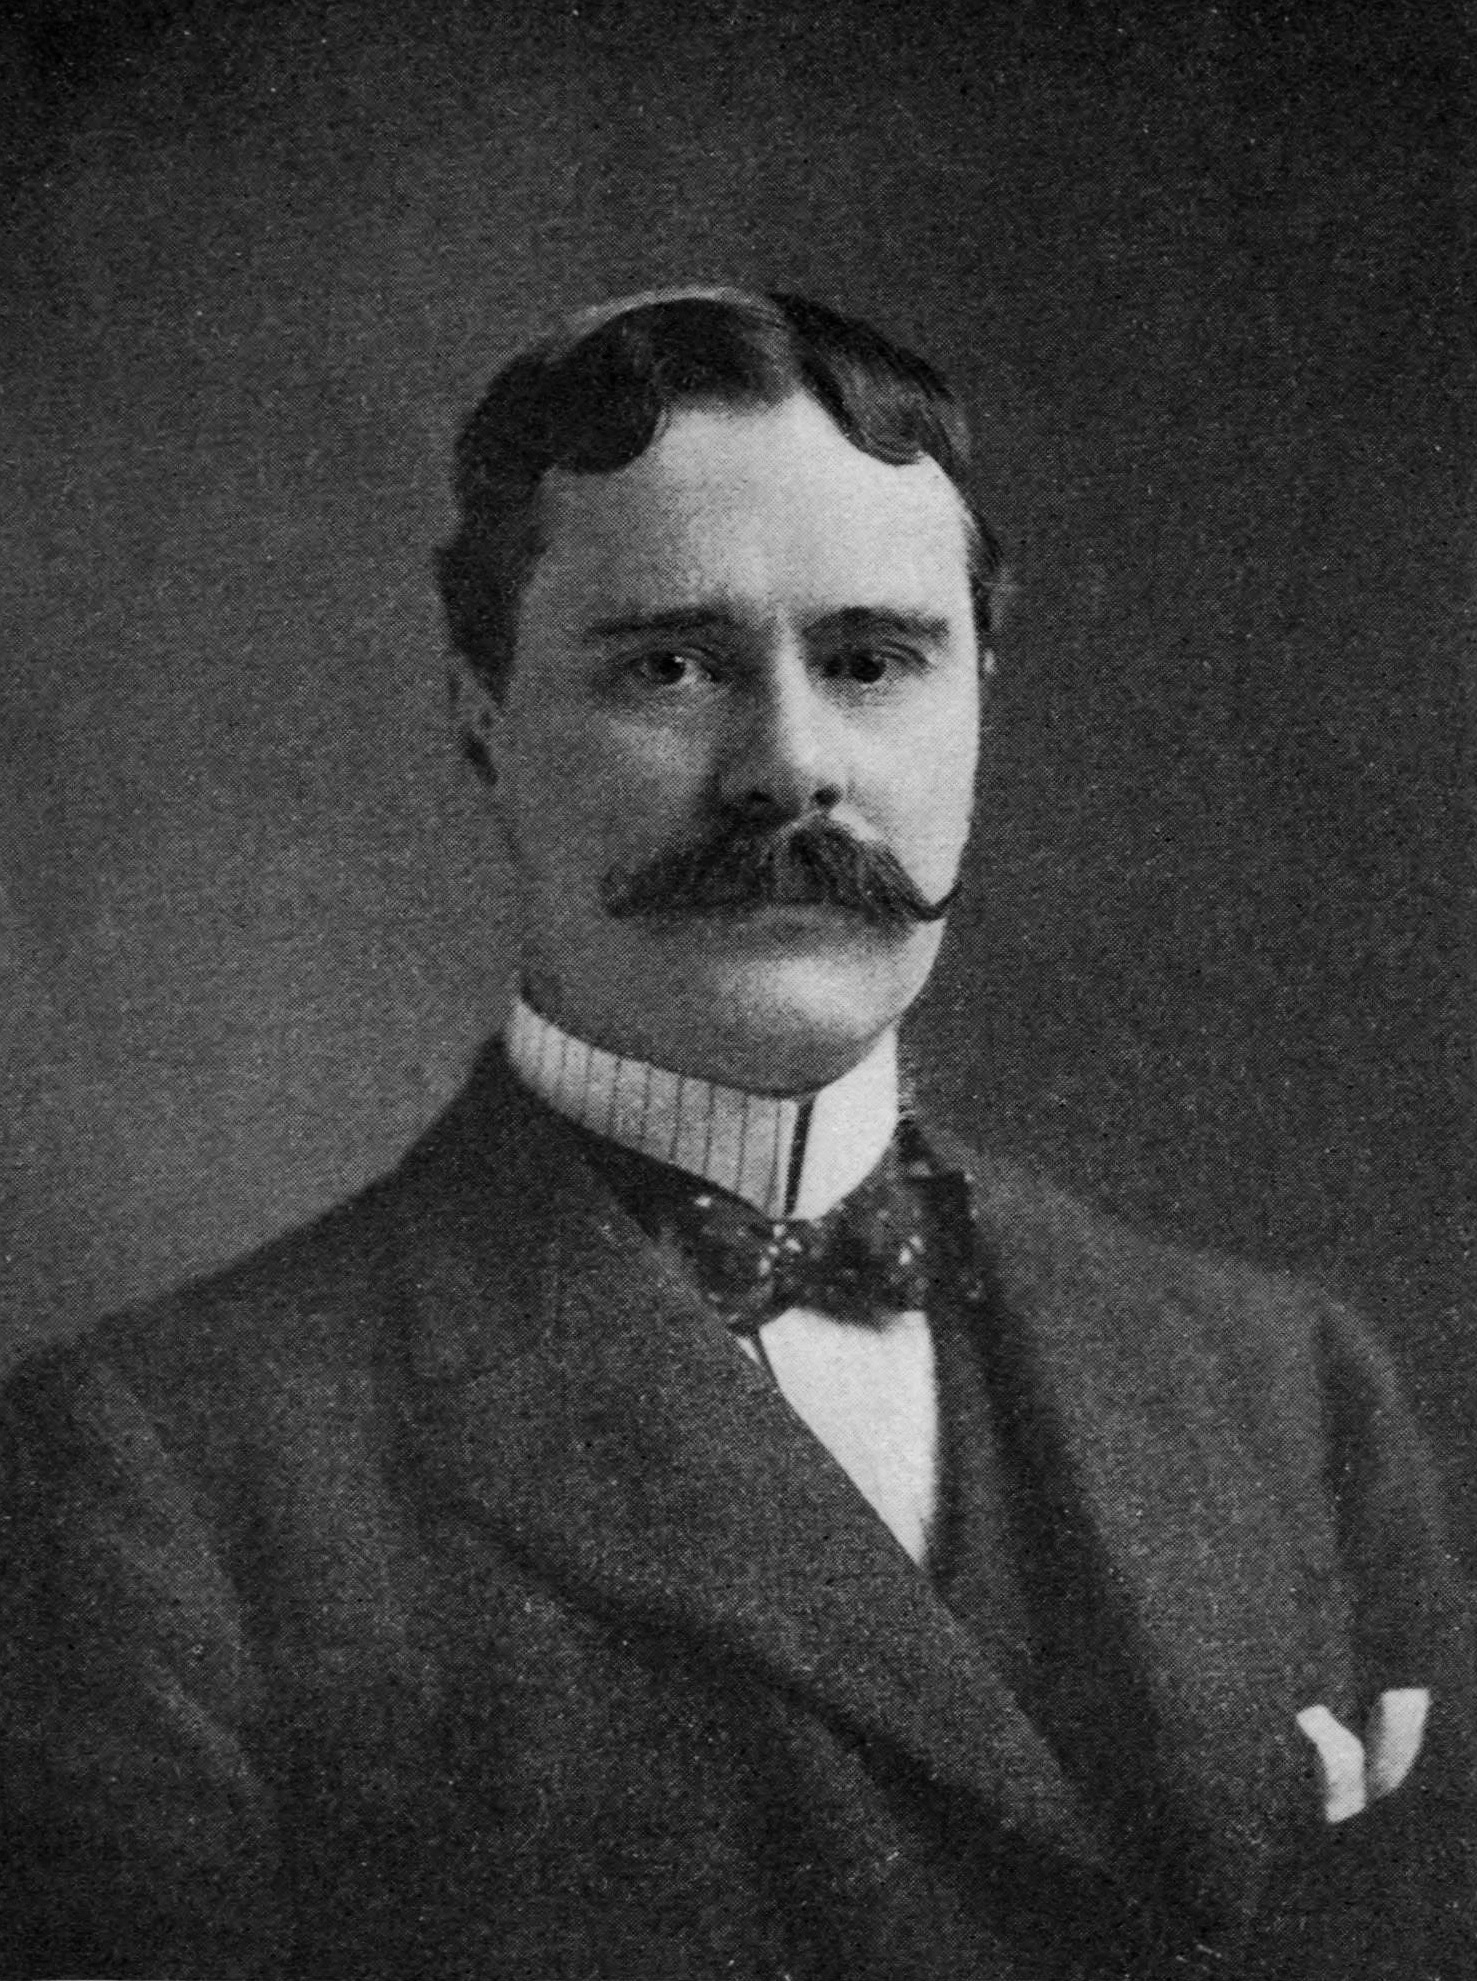 Owen Wister, author of the Western novel ''[[The Virginian (novel)|The Virginian]],'' and friend of 26th U.S. President [[Theodore Roosevelt]]